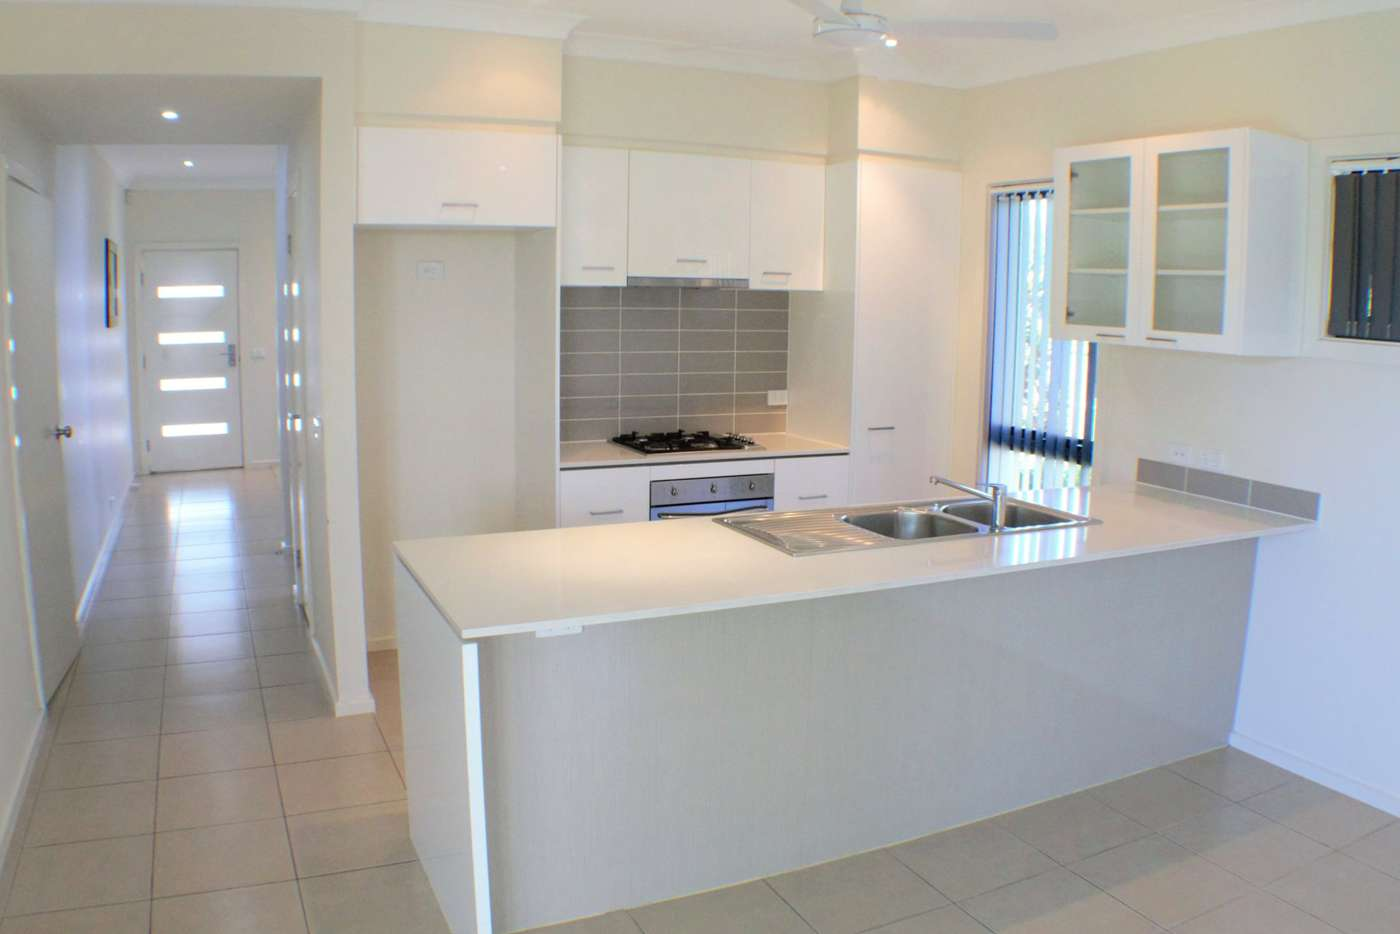 Main view of Homely house listing, 39 Drift St, The Ponds NSW 2769